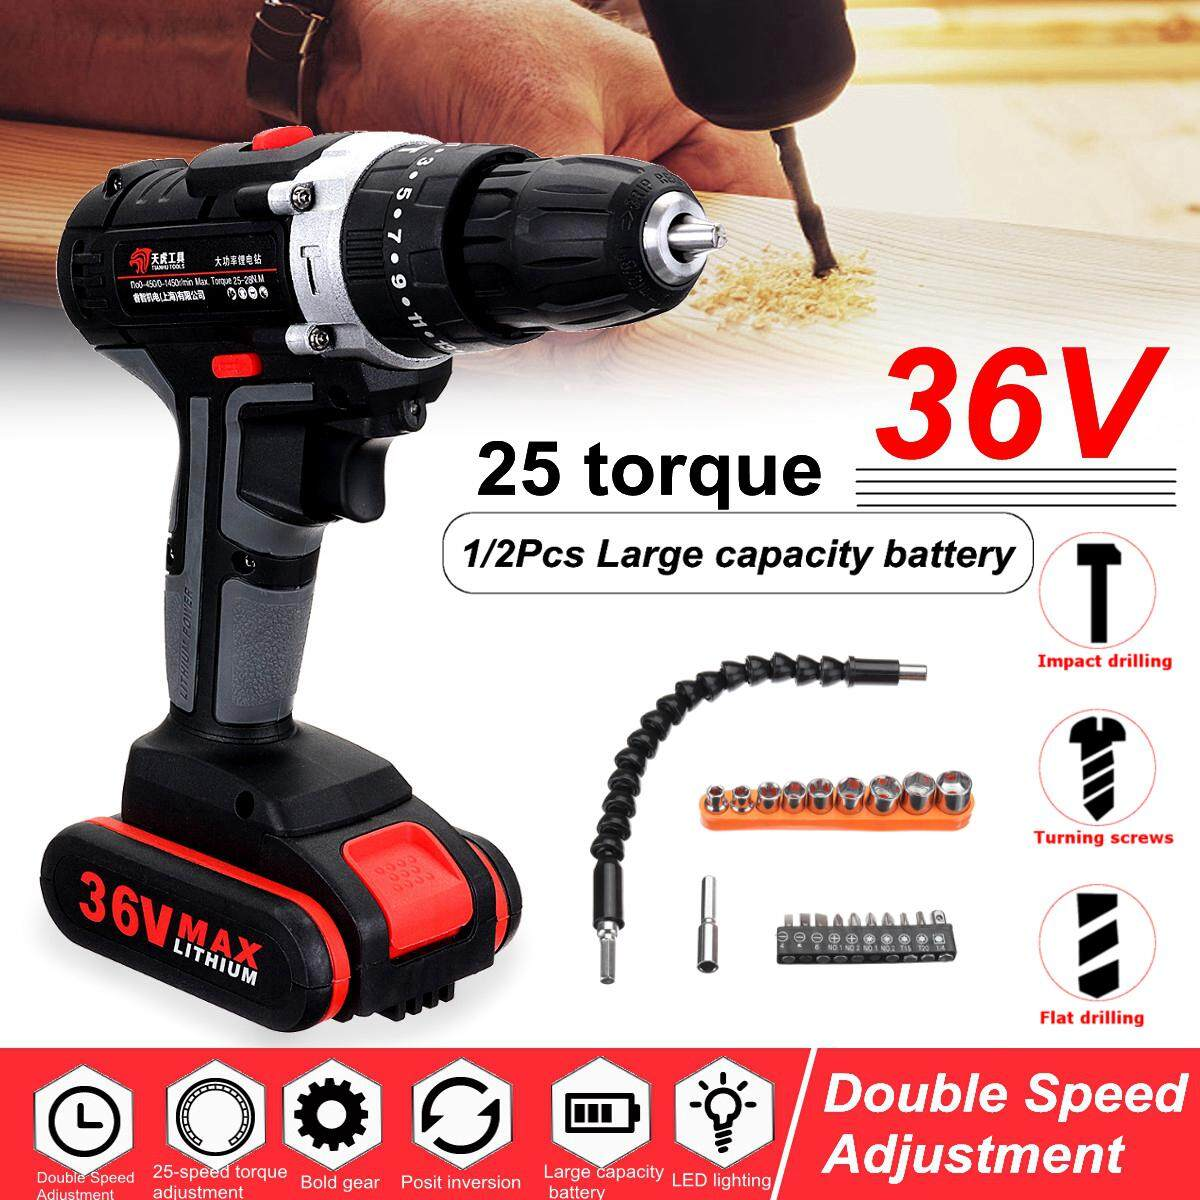 Intelligent 48v 5000mah 25~28nm 25-speed Torque Double Speed Brushless Cordless Electric Drill Screwdriver Hammer Led Lighting Available In Various Designs And Specifications For Your Selection Tools Power Tools